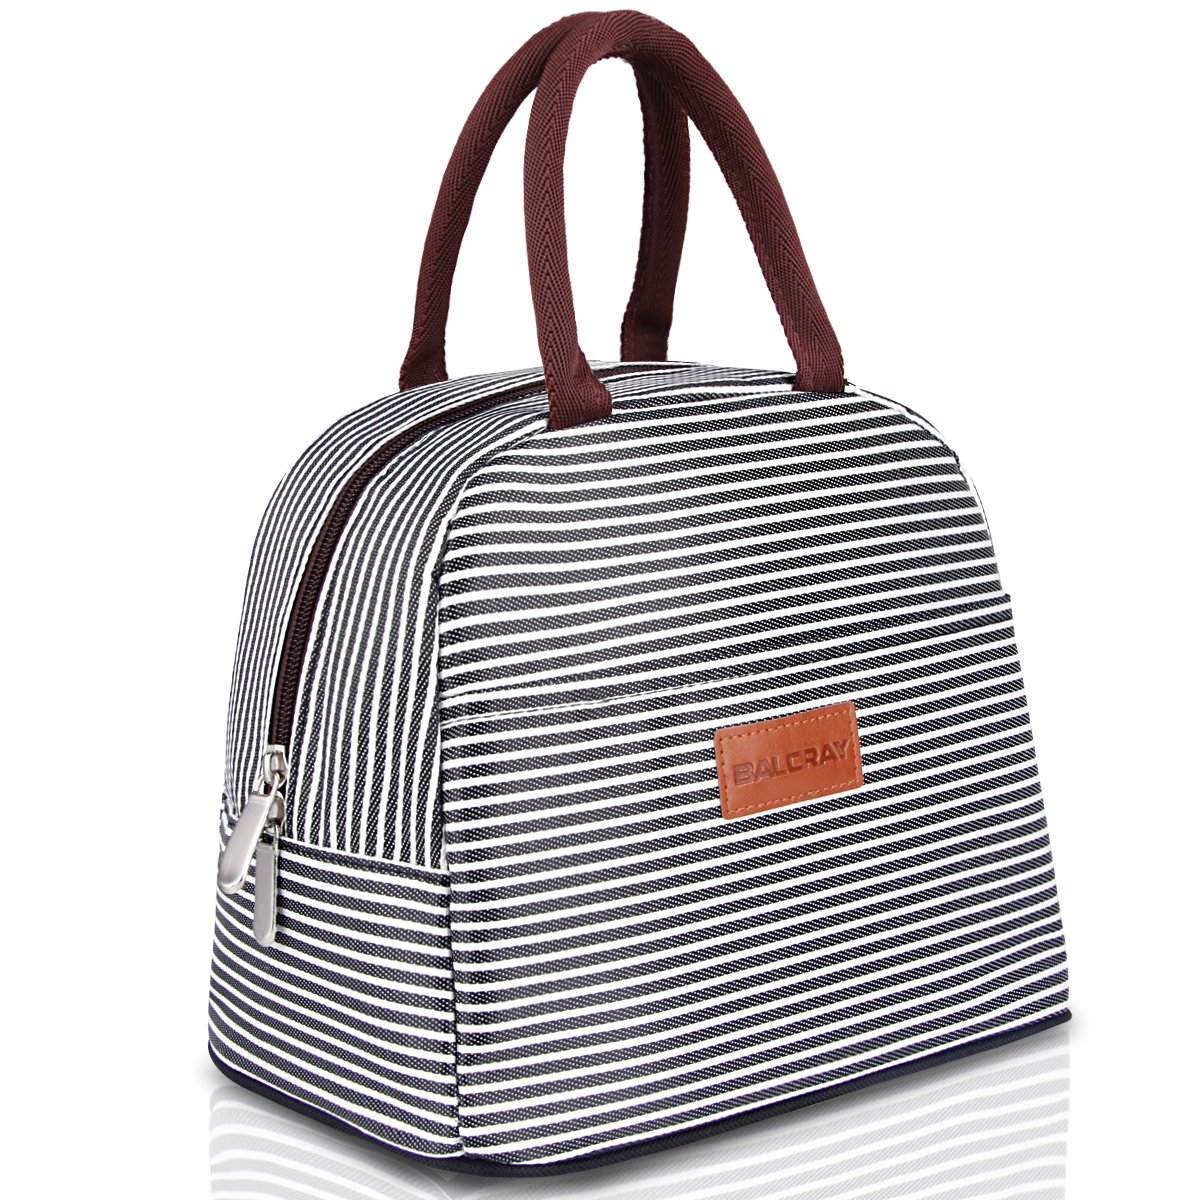 BALORAY Lunch Bag Tote Bag Lunch Bag for Women Lunch Box Insulated Lunch Container by BALORAY